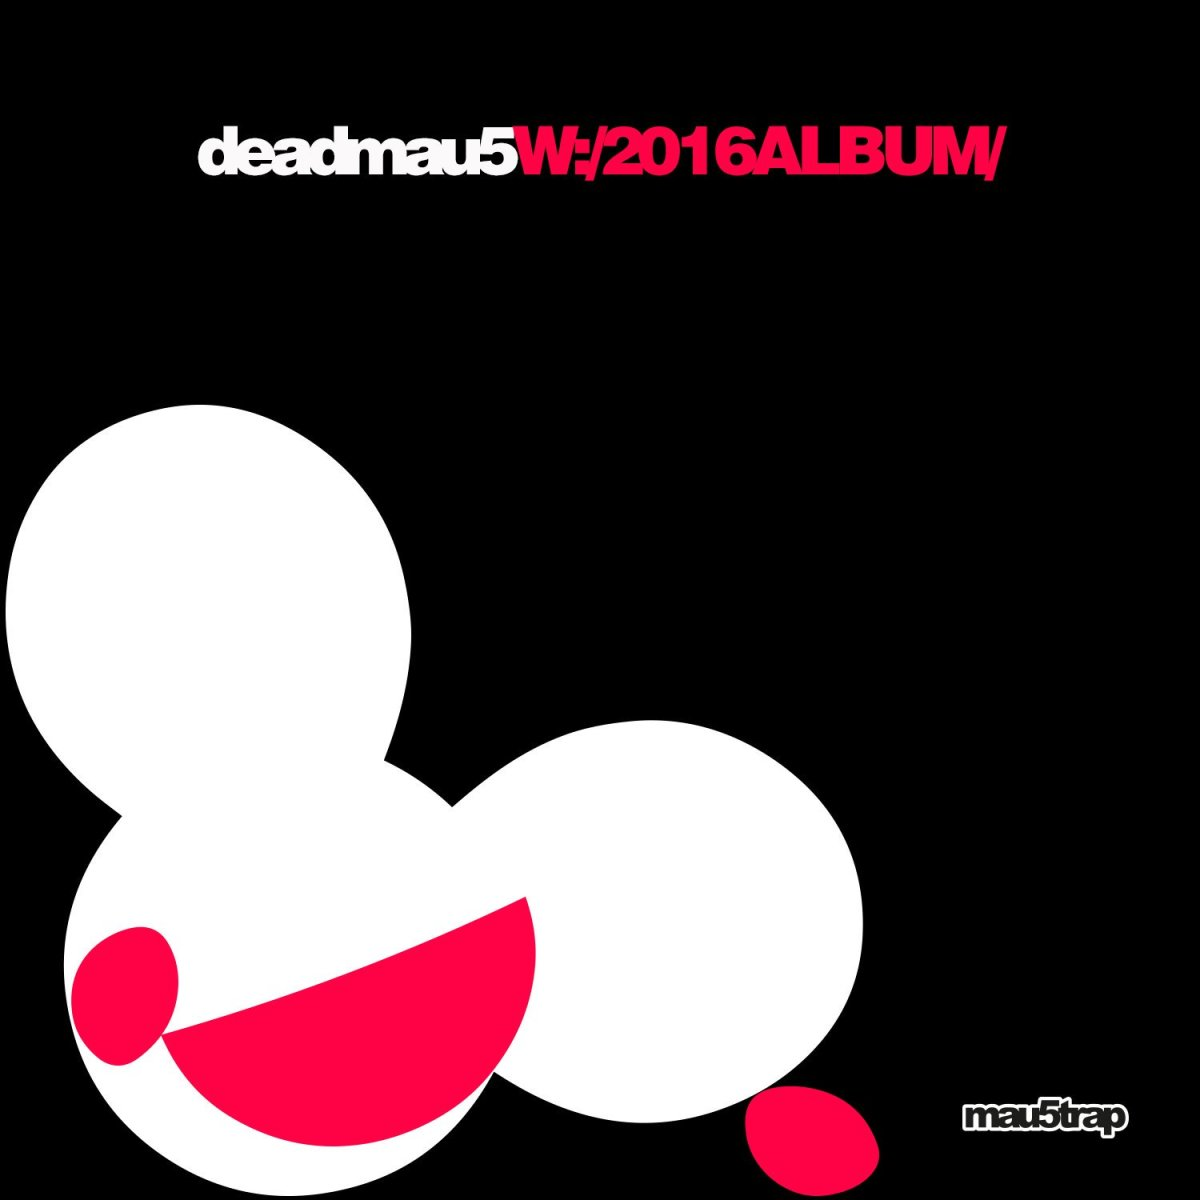 Review: deadmau5's Album, 'W:/2016ALBUM/'